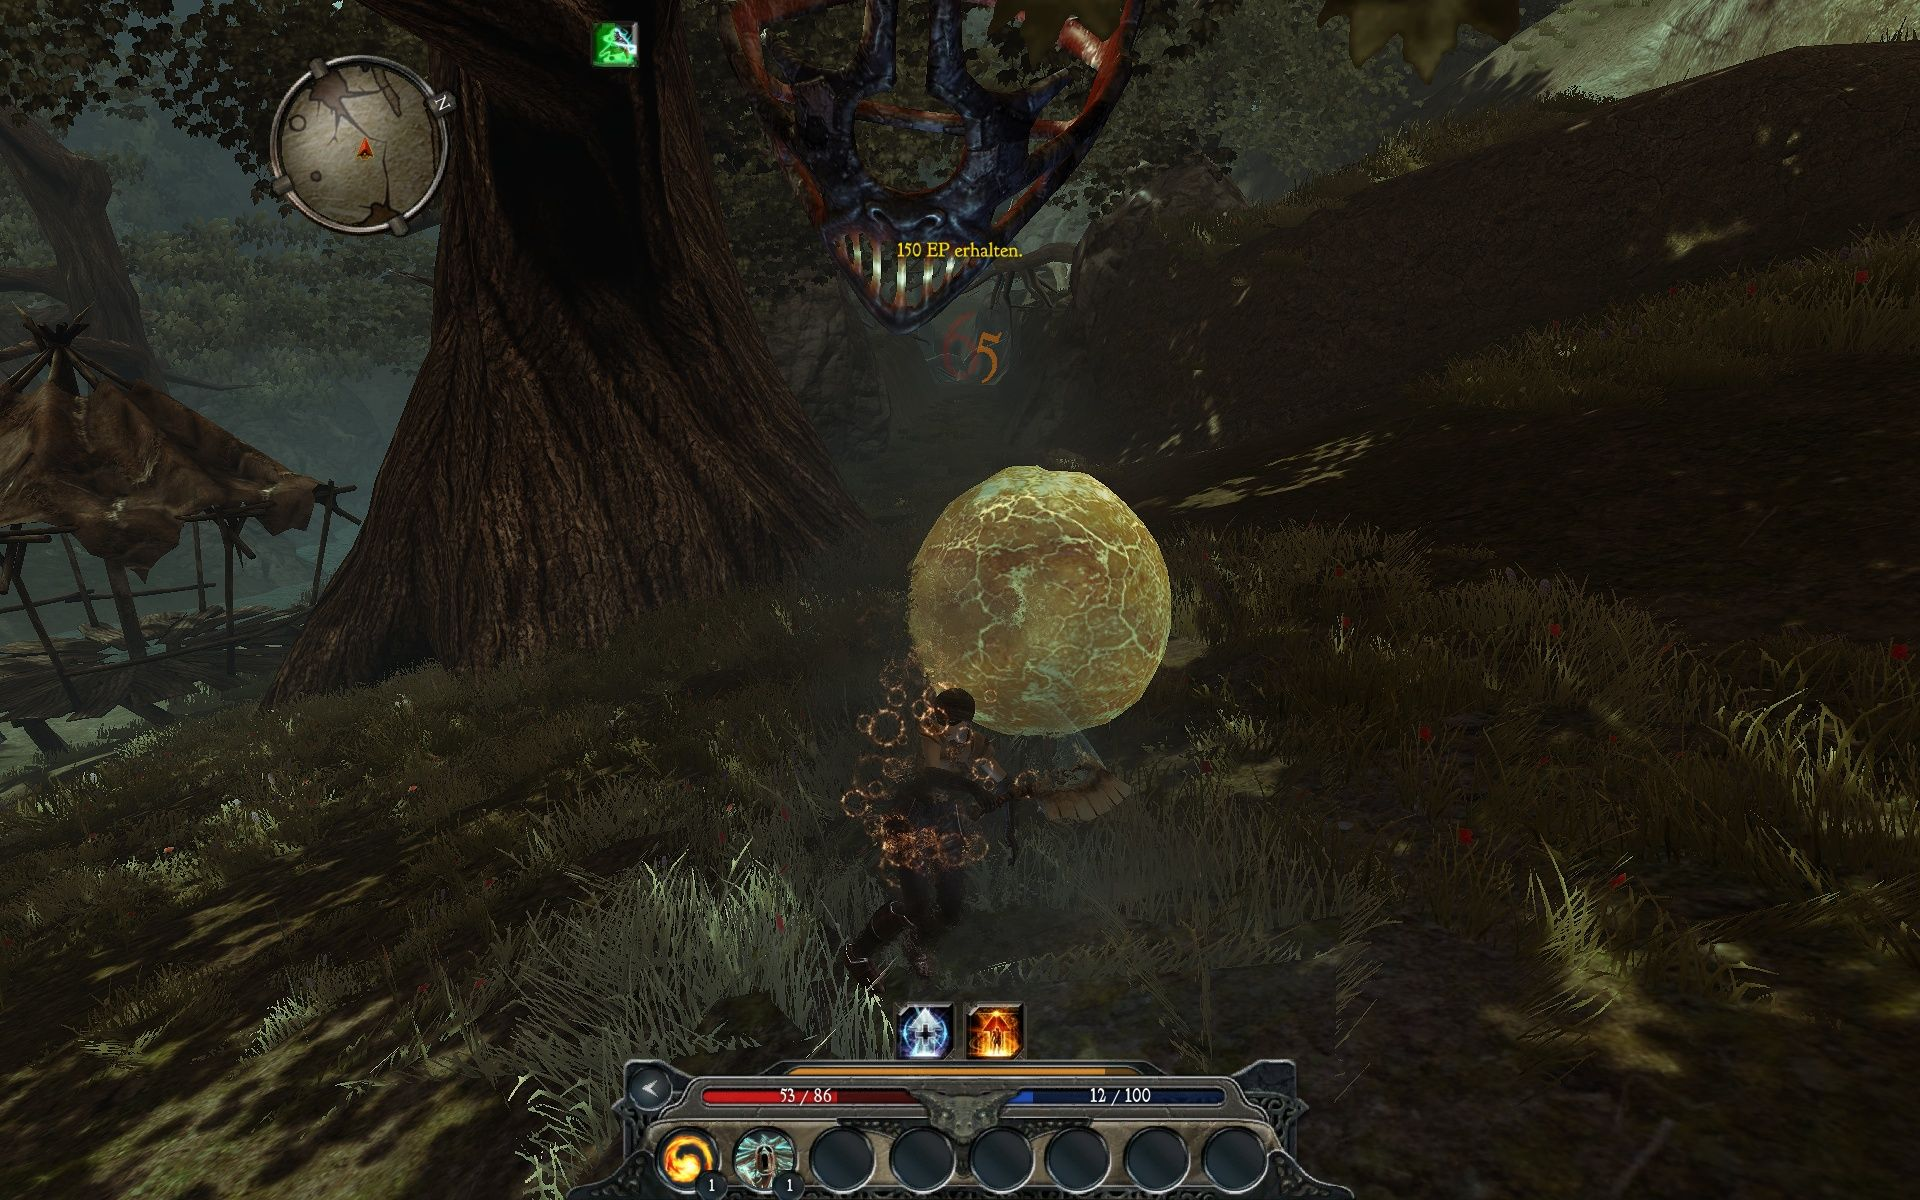 Divinity II: Ego Draconis Windows That strange ball was a boss-enemy.